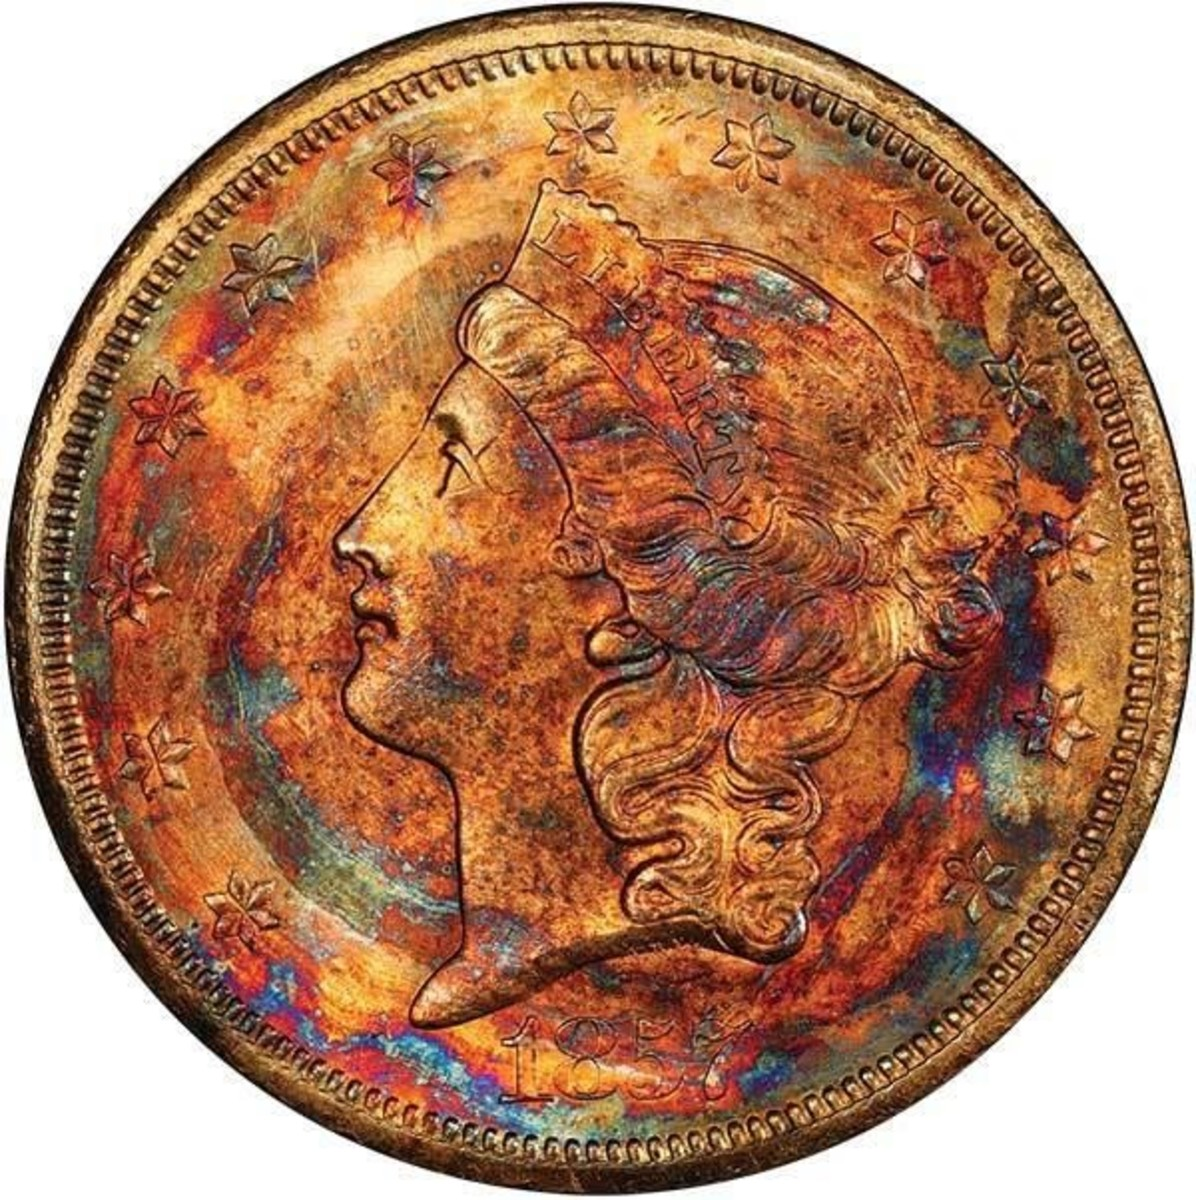 Lot# 493, a $10 1857-S PCGS MS67 CAC is estimated to sell between $300,000 and $350,000.